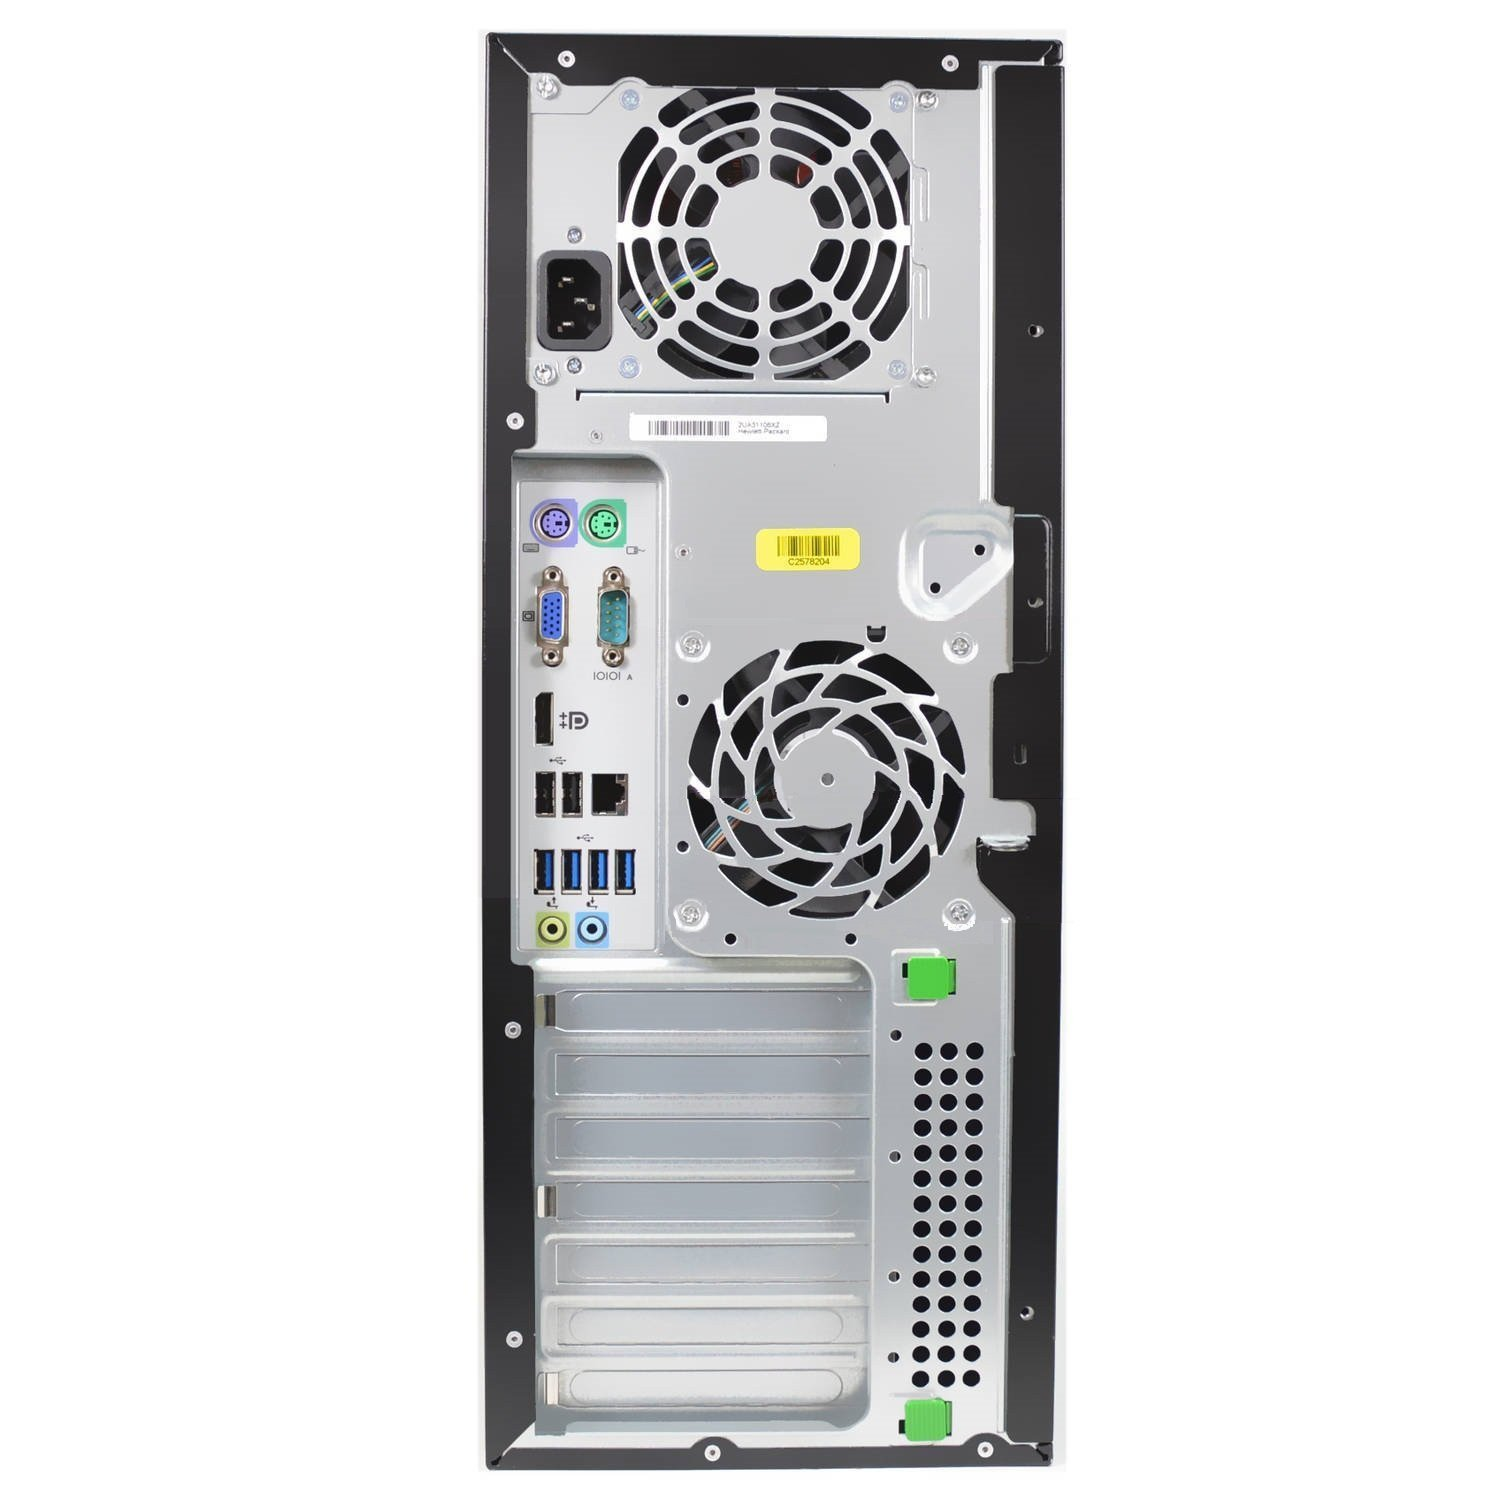 191915960486 as well Dell Updates Optiplex Business Desktops And Precision Workstations additionally Desktop Power Supply For Dell Optiplex 3010 7010 9010 Sff 240w Ph3c2 Dps 240wb furthermore Samsung Toaster Oven Microwave  bo as well Dell Optiplex 990 Sff Quad Core I5 2400 16gb 1tb Windows 10 Professional Desktop Pc  puter. on dell 790 sff